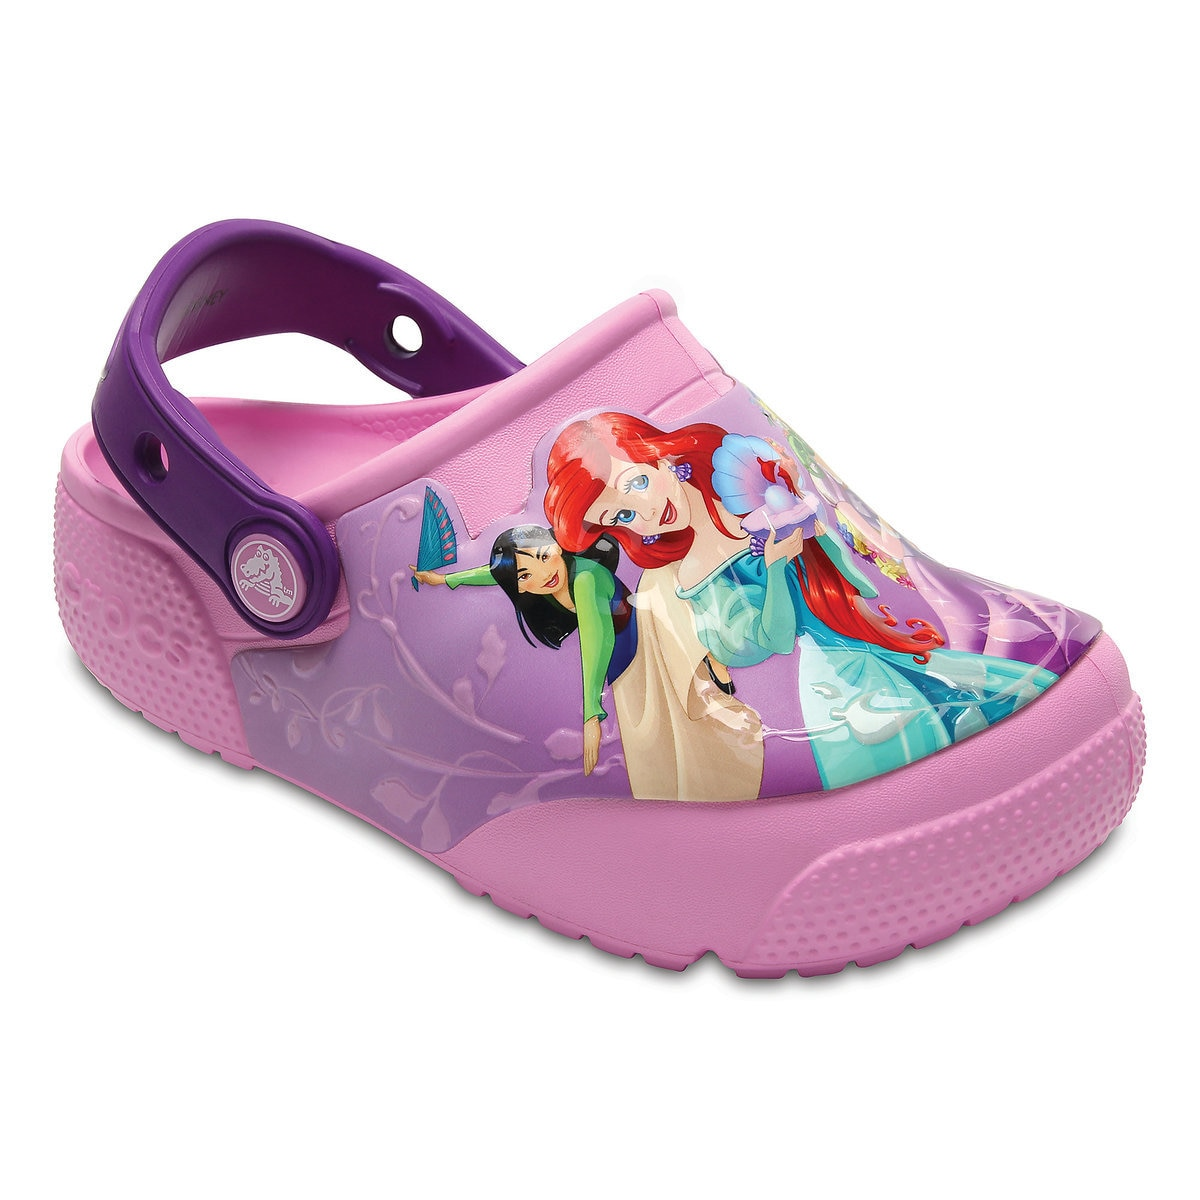 97e00d4762 Product Image of Disney Princess Light-Up Clogs for Kids by Crocs   1